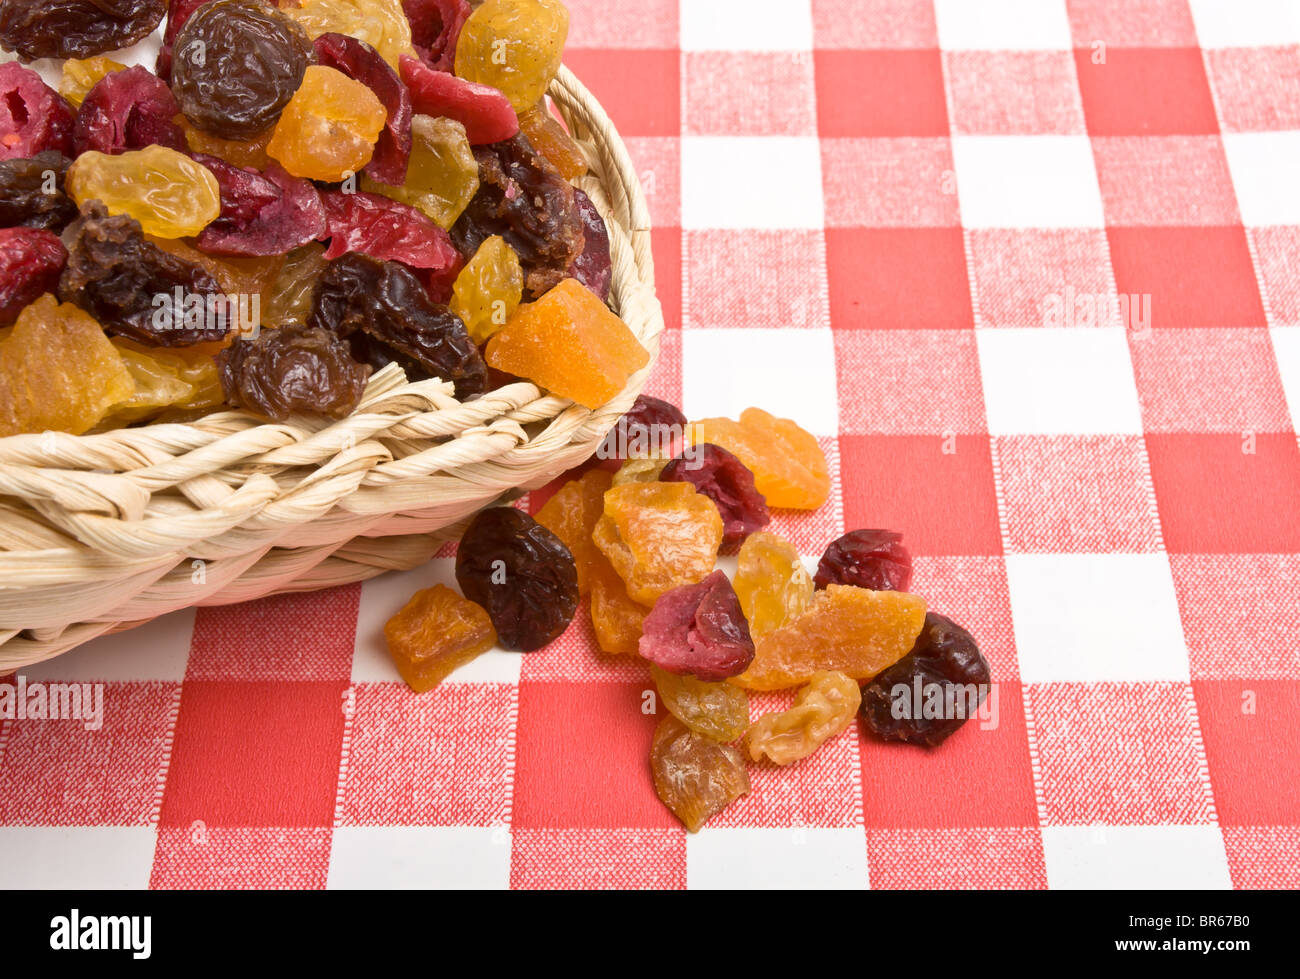 Dried Fruits of apricot, sultana, raisins and cranberries spilling onto red and white tablecloth. - Stock Image